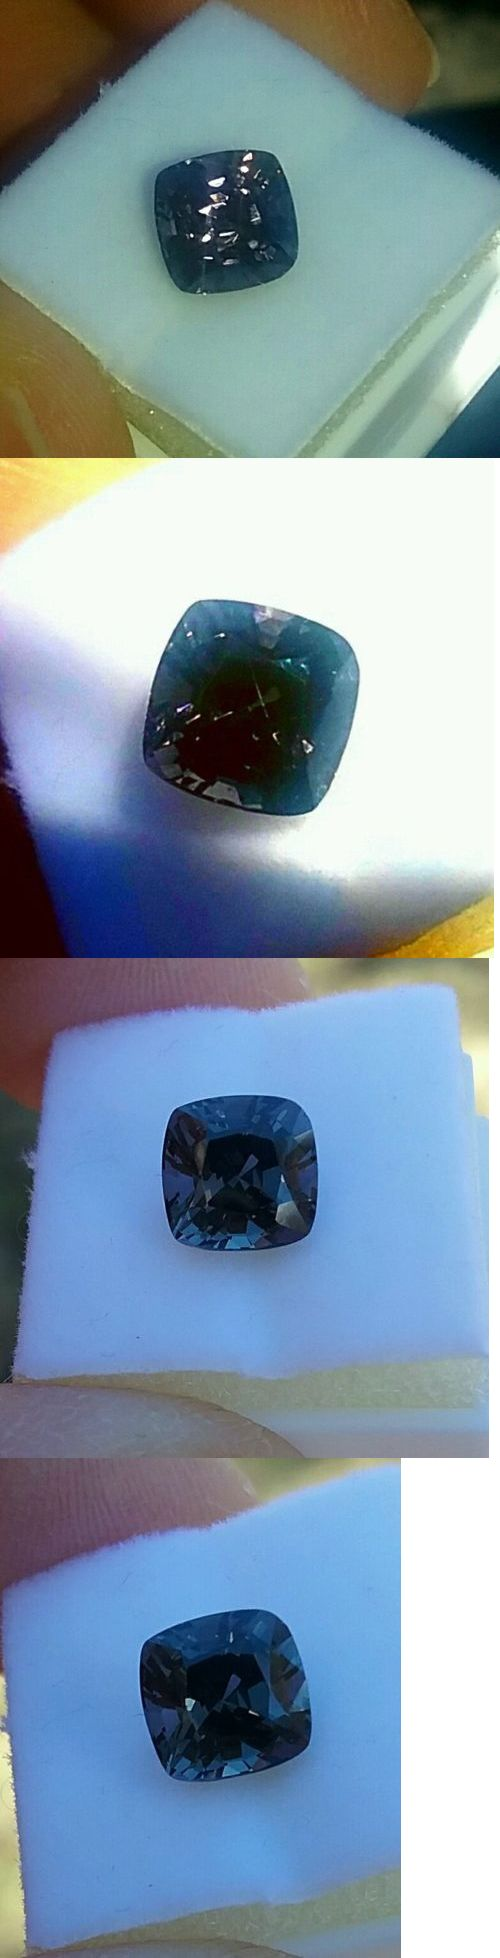 Spinel 110873: 2.35Ct.Purple Silver Spinel Namya S.E Asia Stunner Flawless Cushion -> BUY IT NOW ONLY: $175 on eBay!